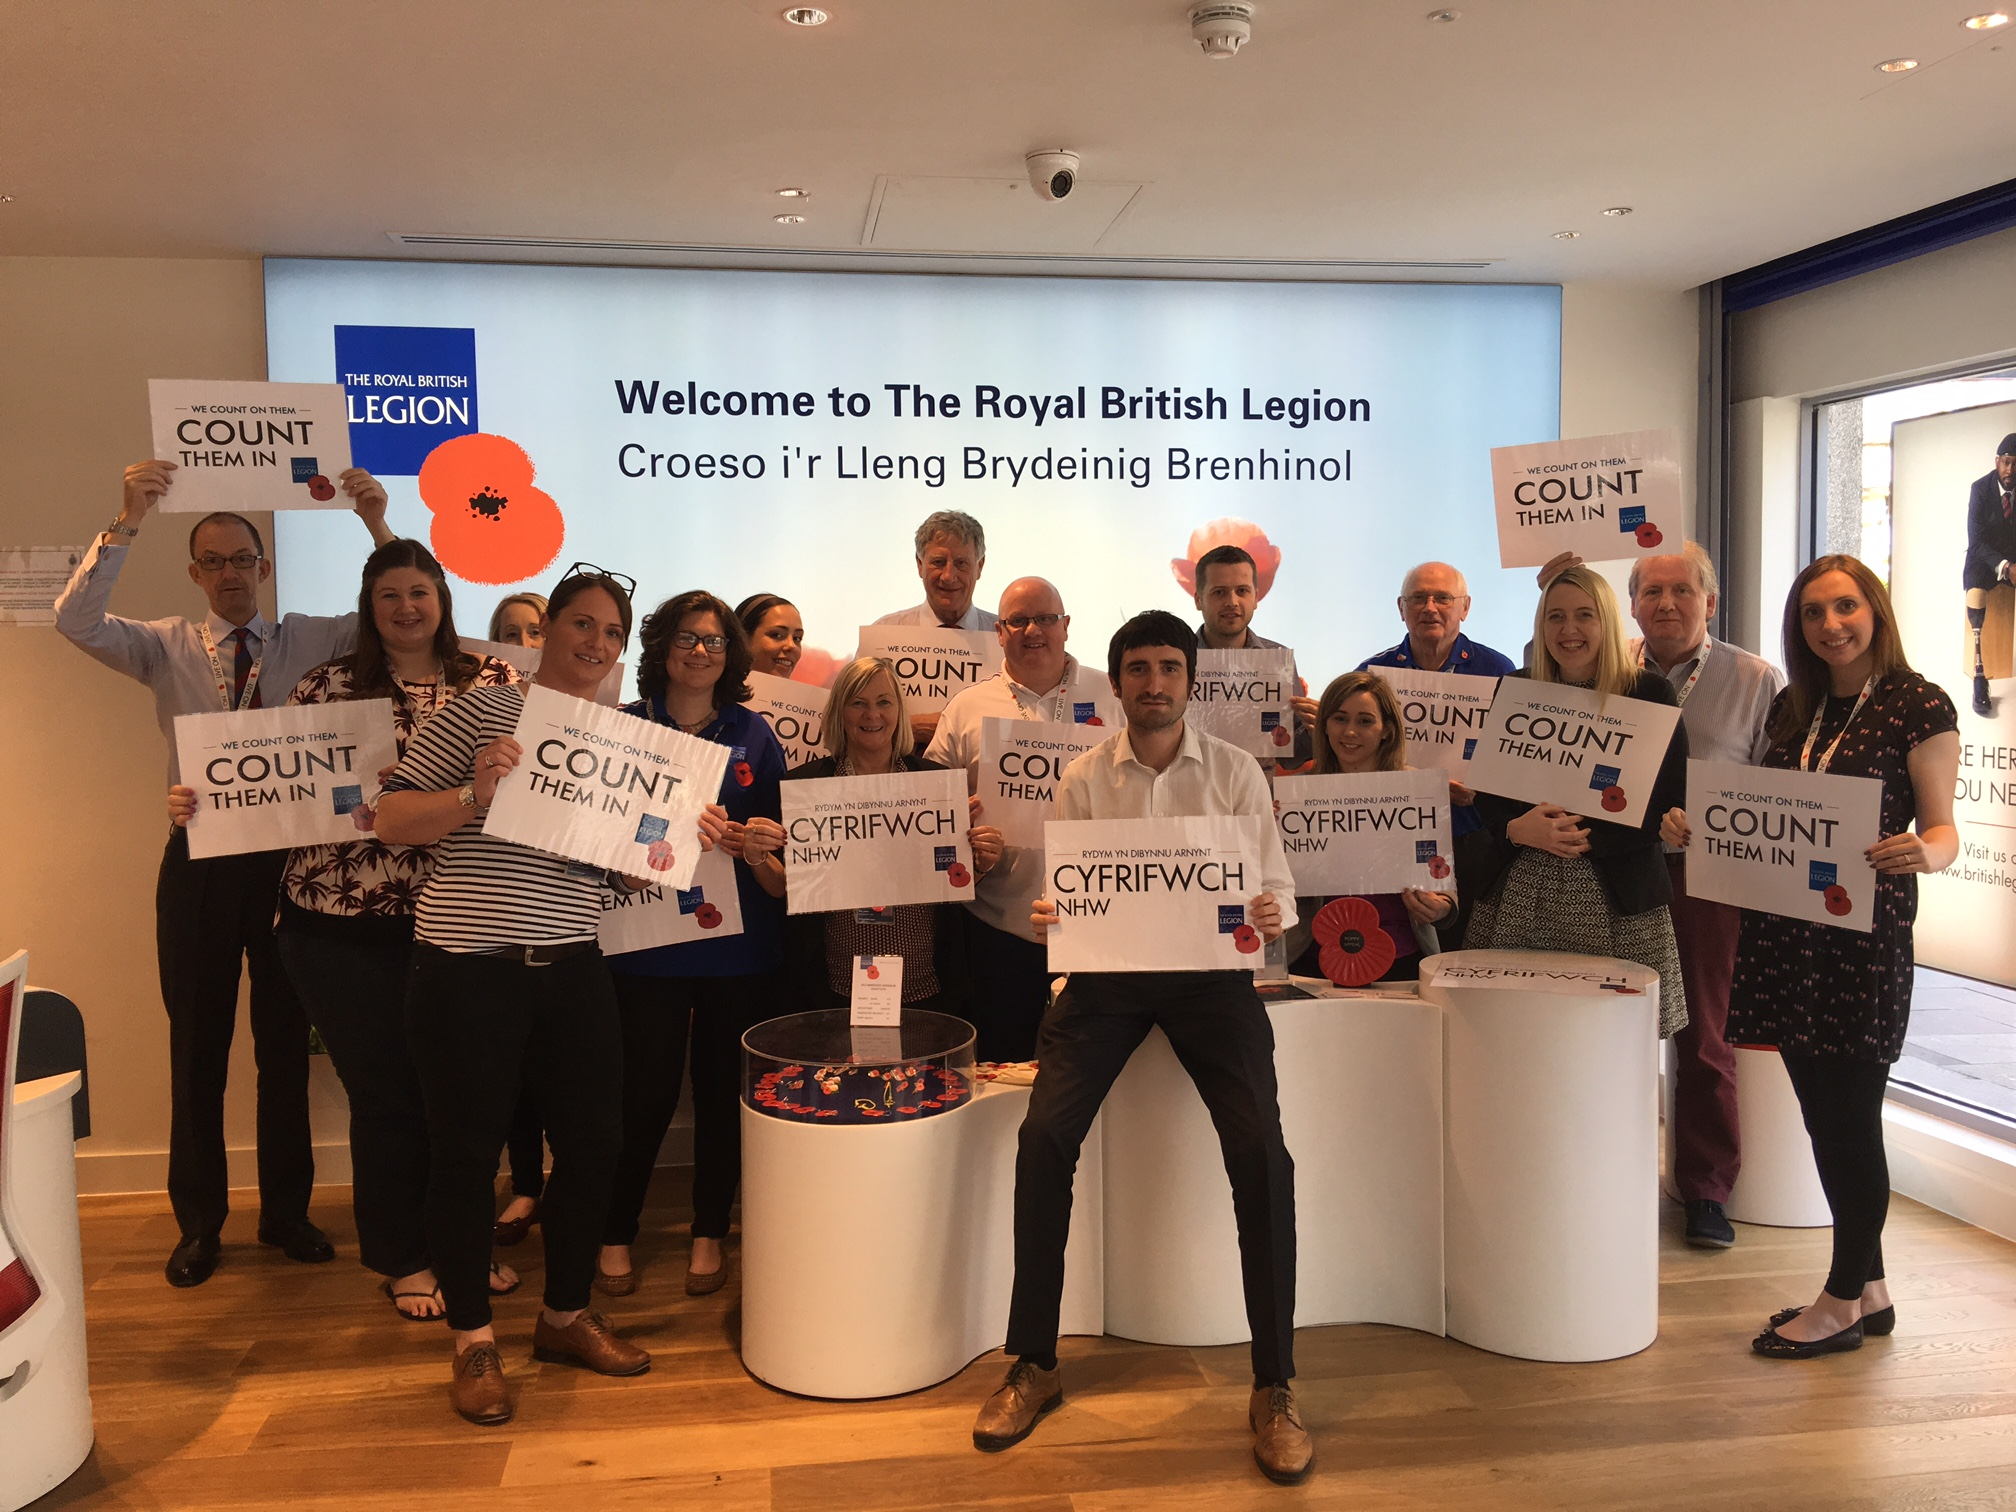 Business Language Services Business Language Services supports Royal British Legion Campaign